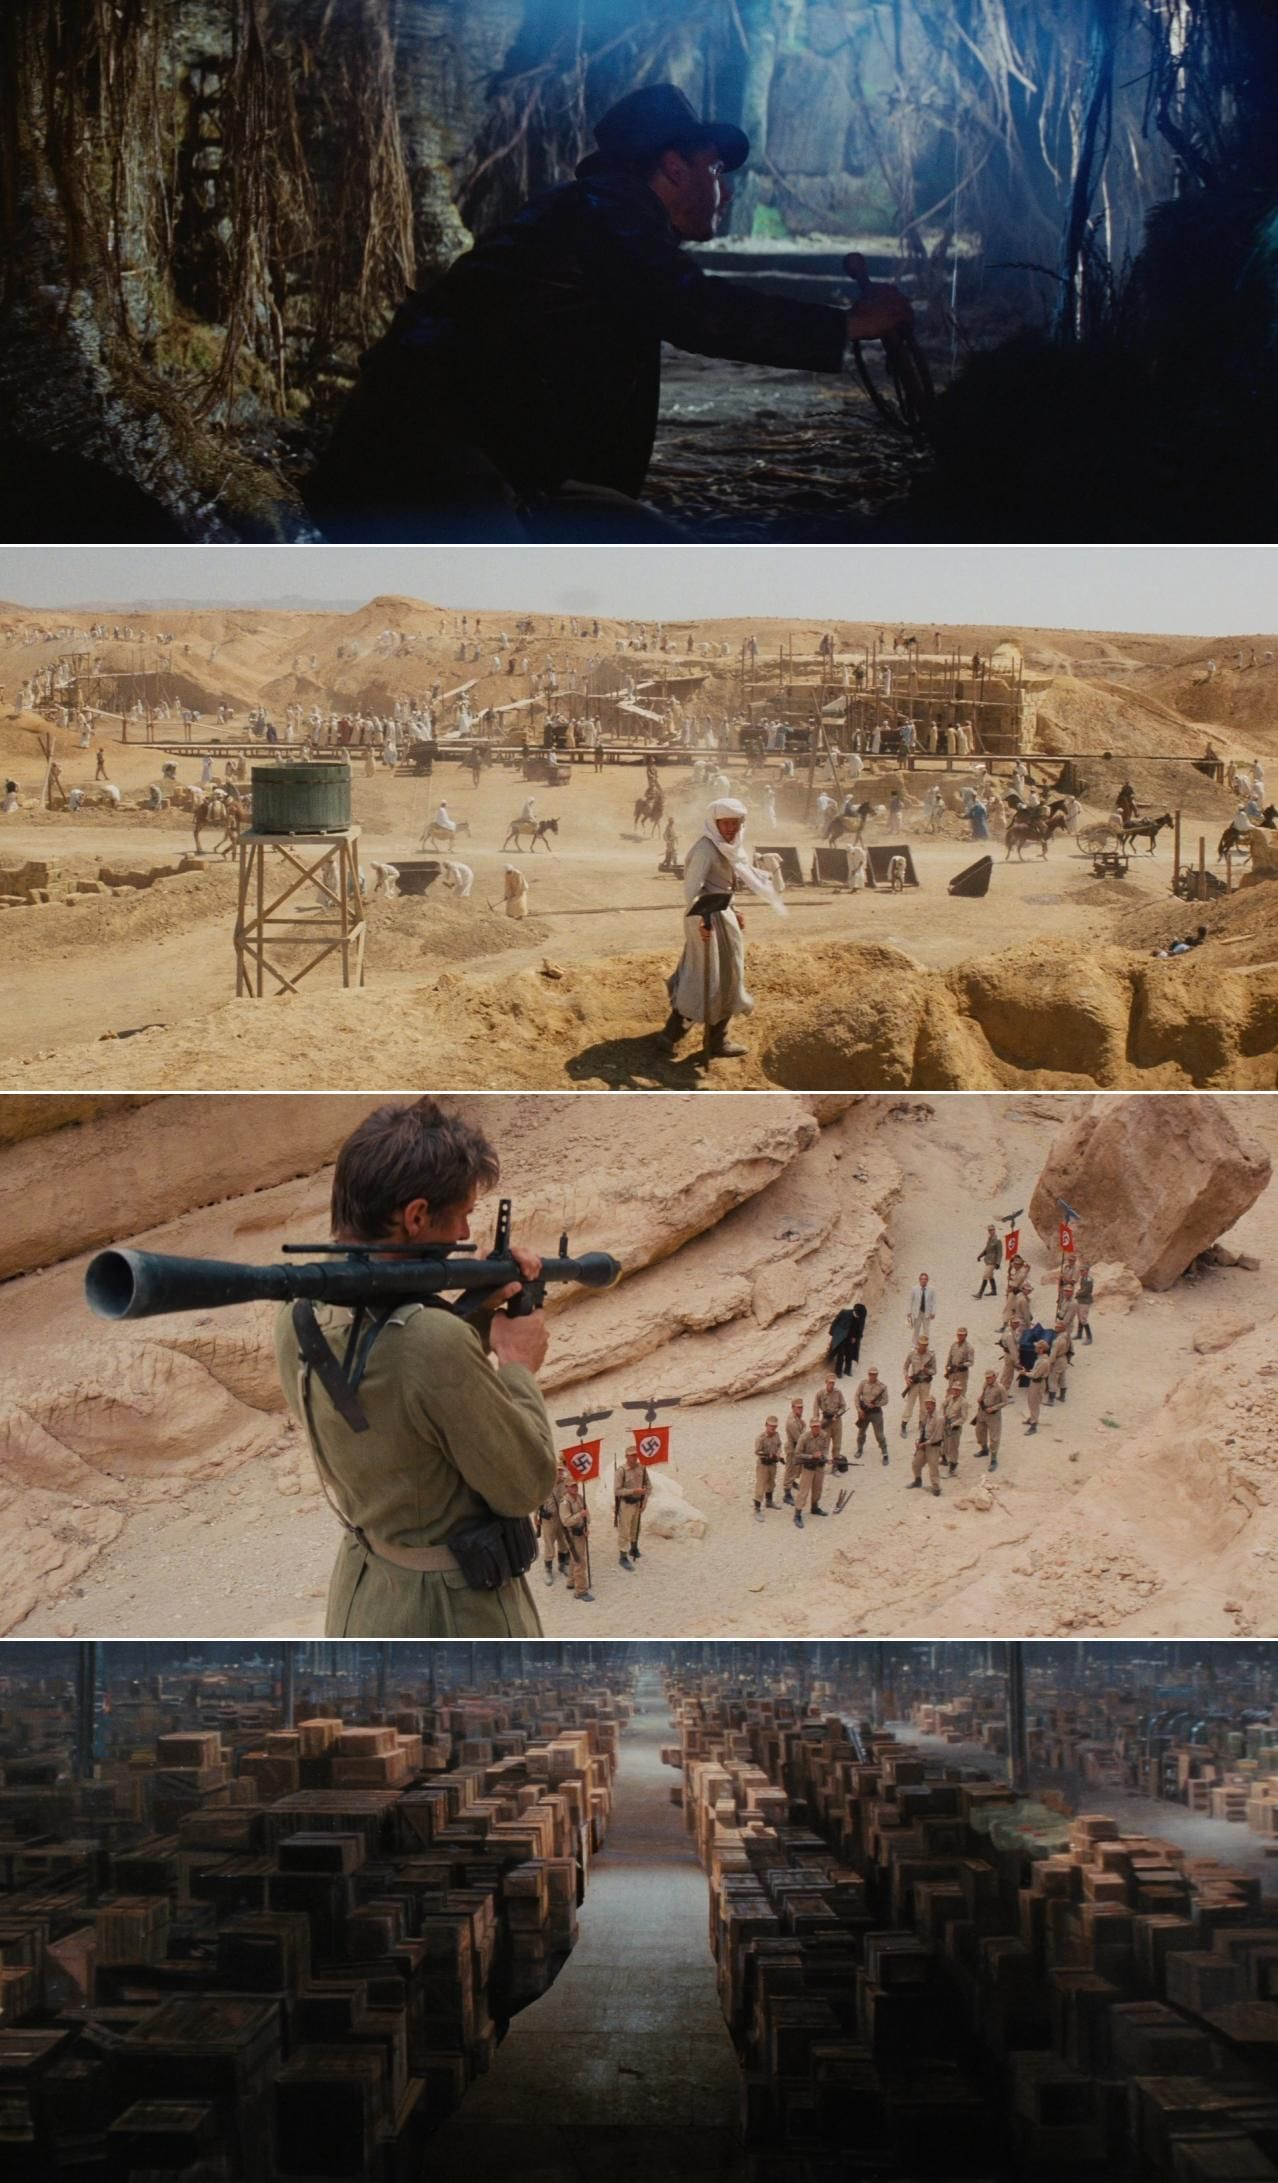 Raiders Of The Lost Ark 1981 Cinematography By Douglas Slocombe Directed By Steven Spielberg Film Stills Cinematography Movie Shots